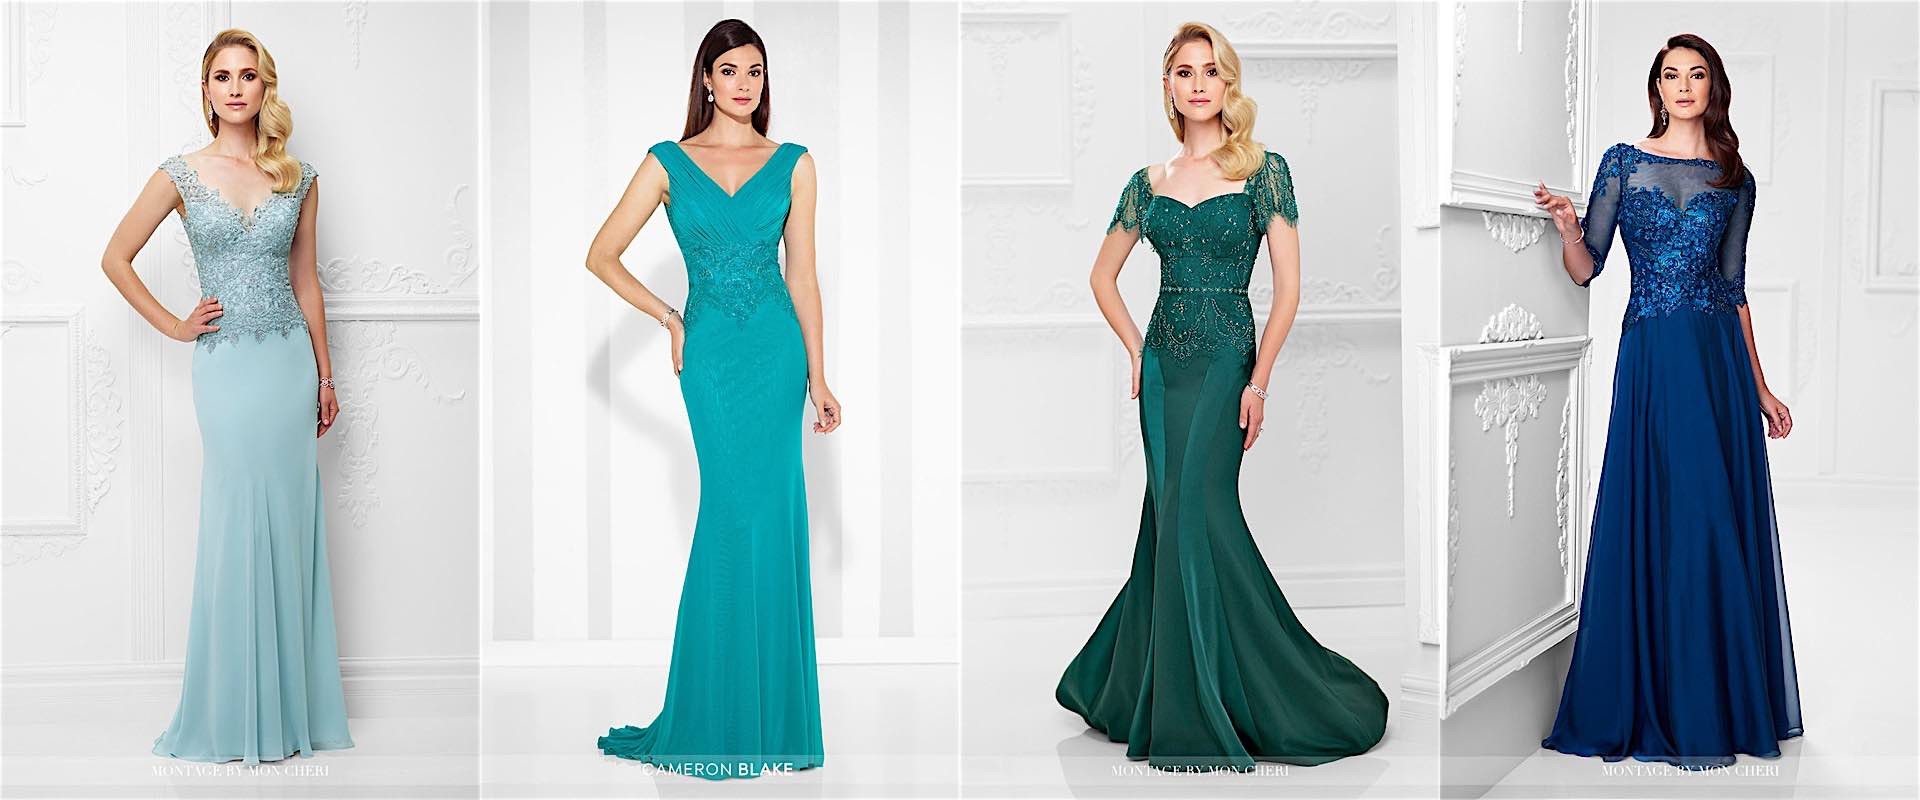 Montage by Mon Cheri - Blue and Green Dresses for Mother of the Bride